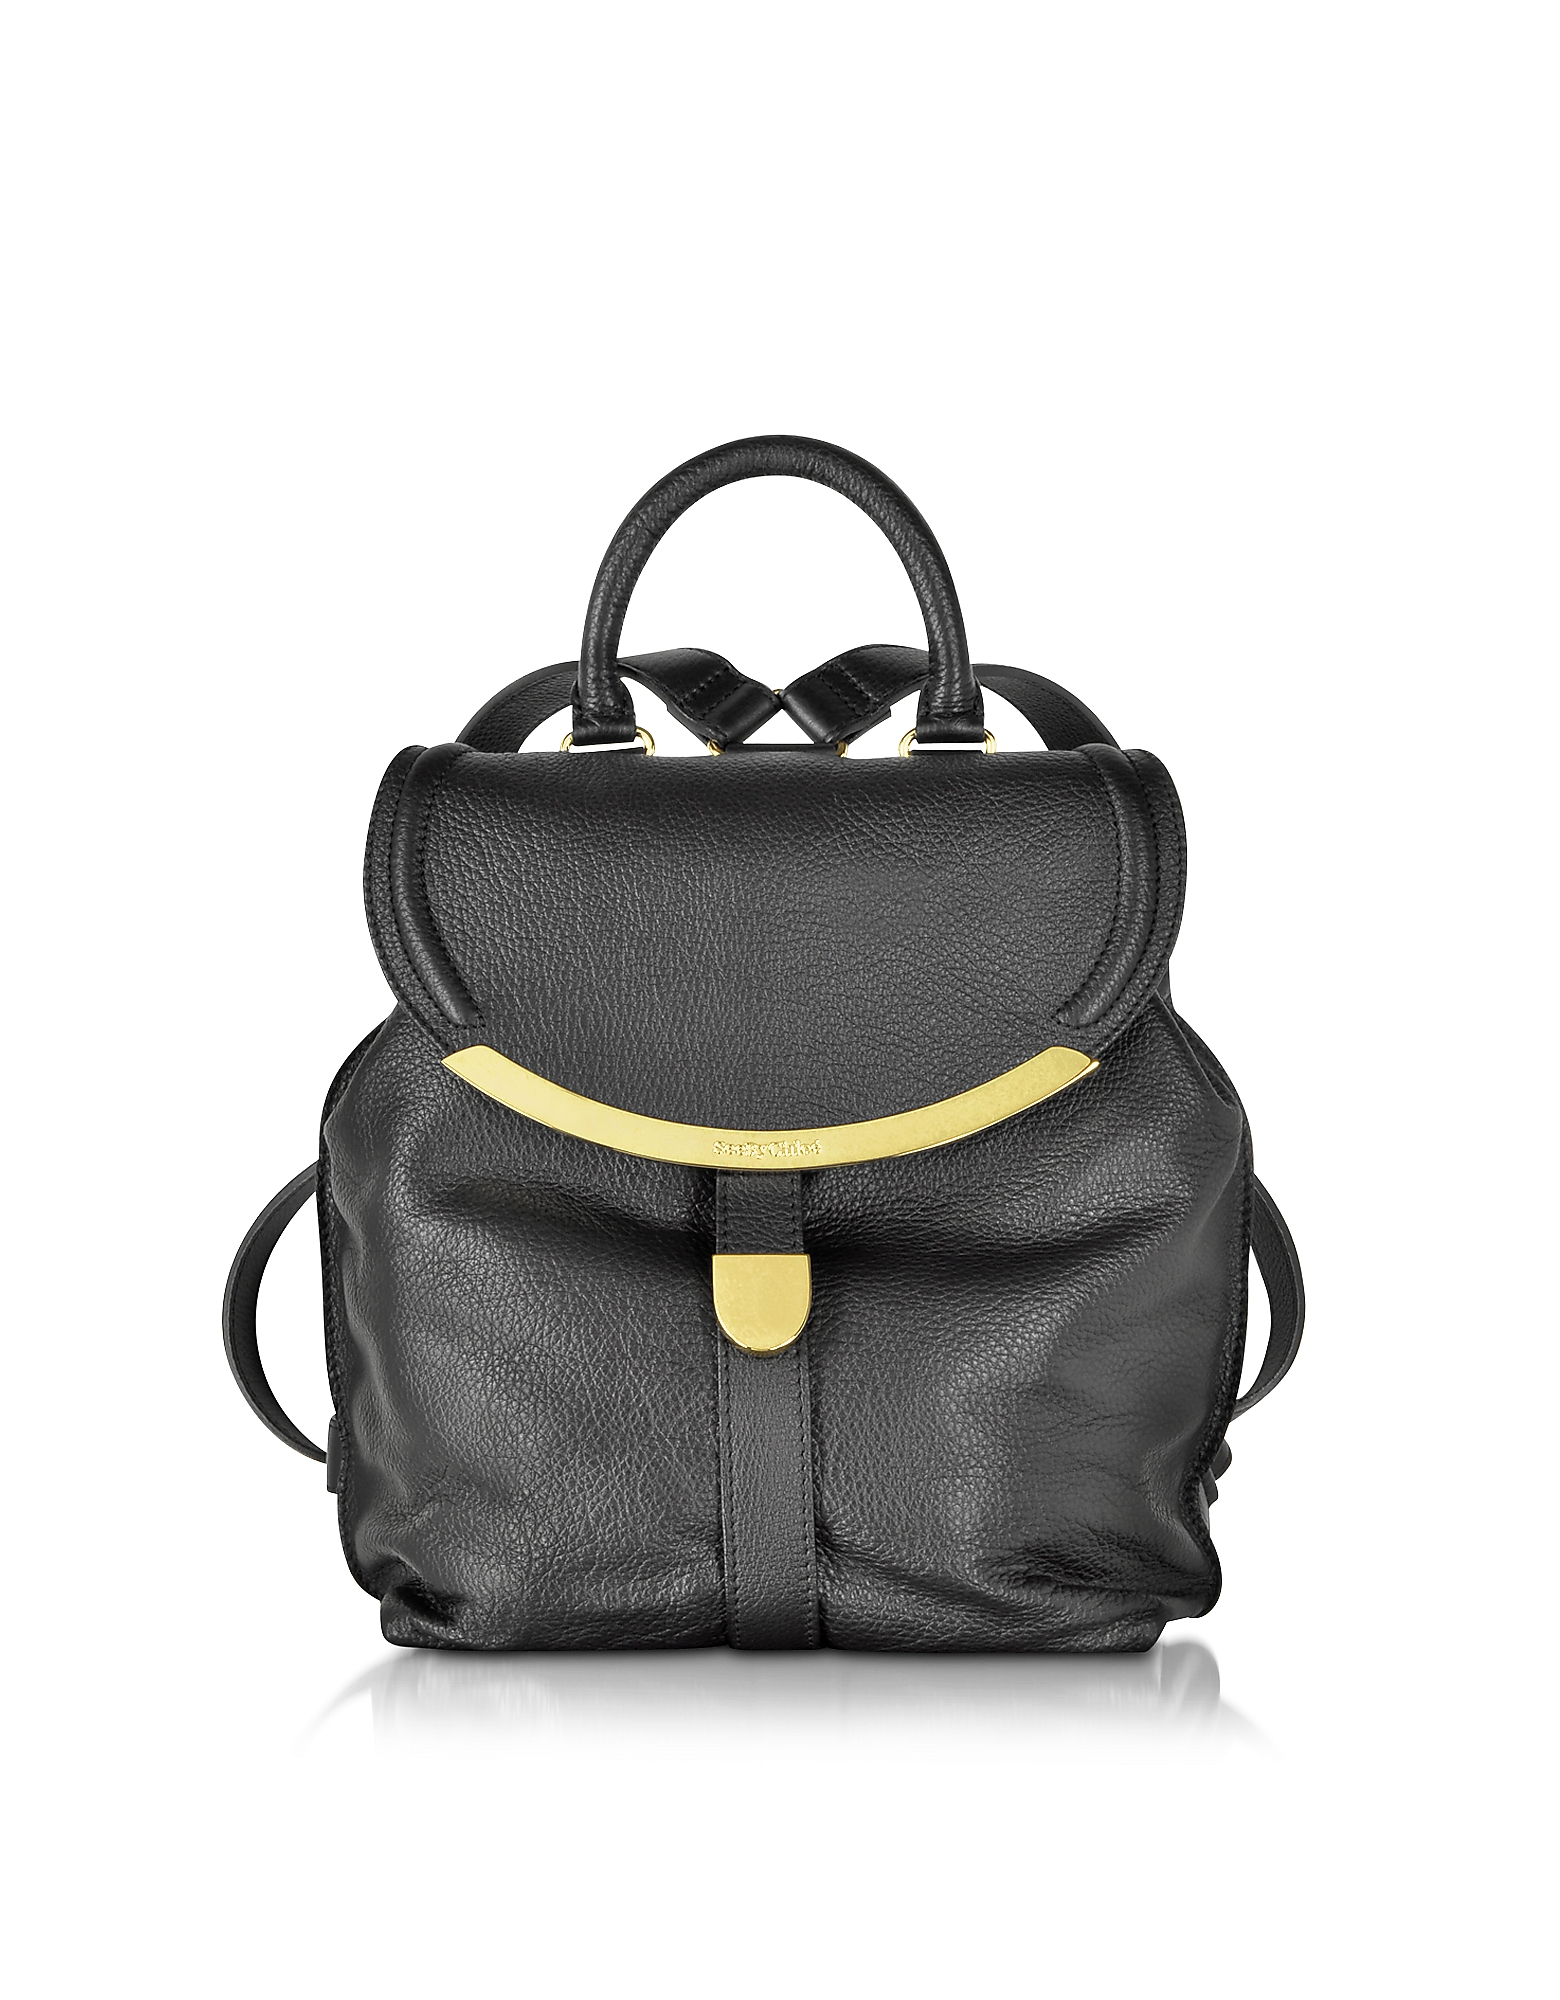 Lyst - See By Chloé Lizzie Pebble Leather Backpack in Black f8f071230dea9